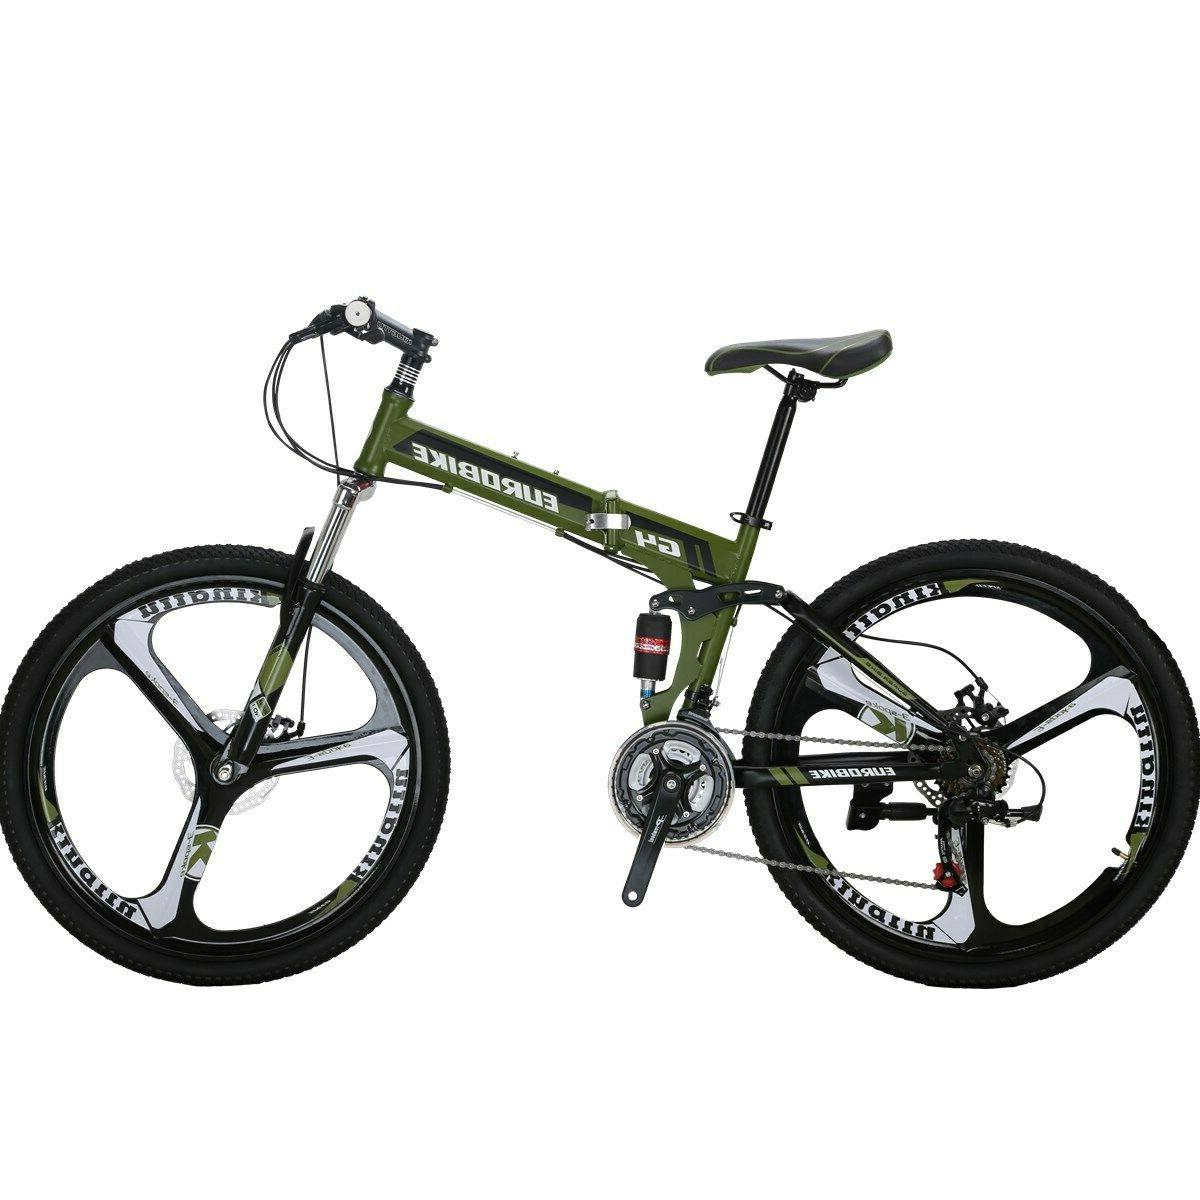 G4 Bike Bicycle Bikes